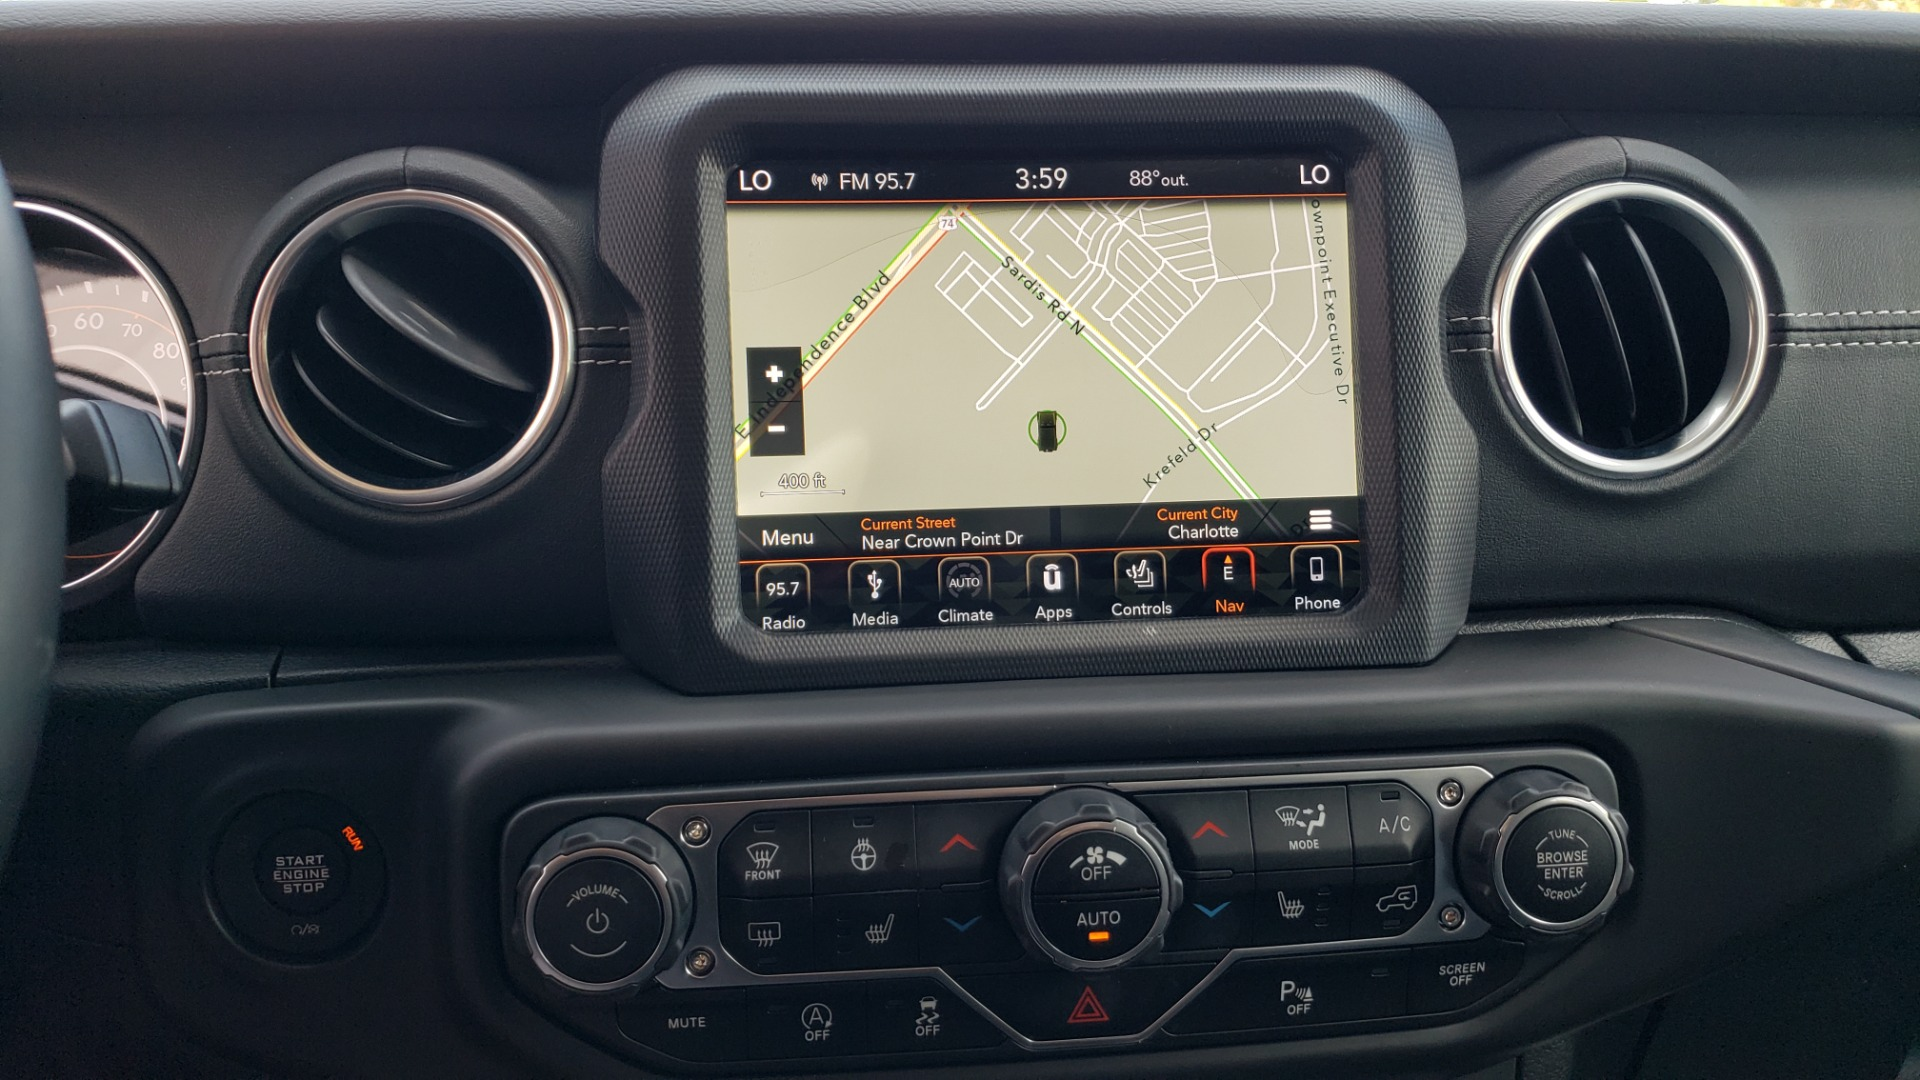 Used 2018 Jeep WRANGLER UNLIMITED SAHARA / 3.6L V6 / 6-SPD MAN / ALPINE / NAV / HTD STS / REARVIEW for sale $43,999 at Formula Imports in Charlotte NC 28227 64